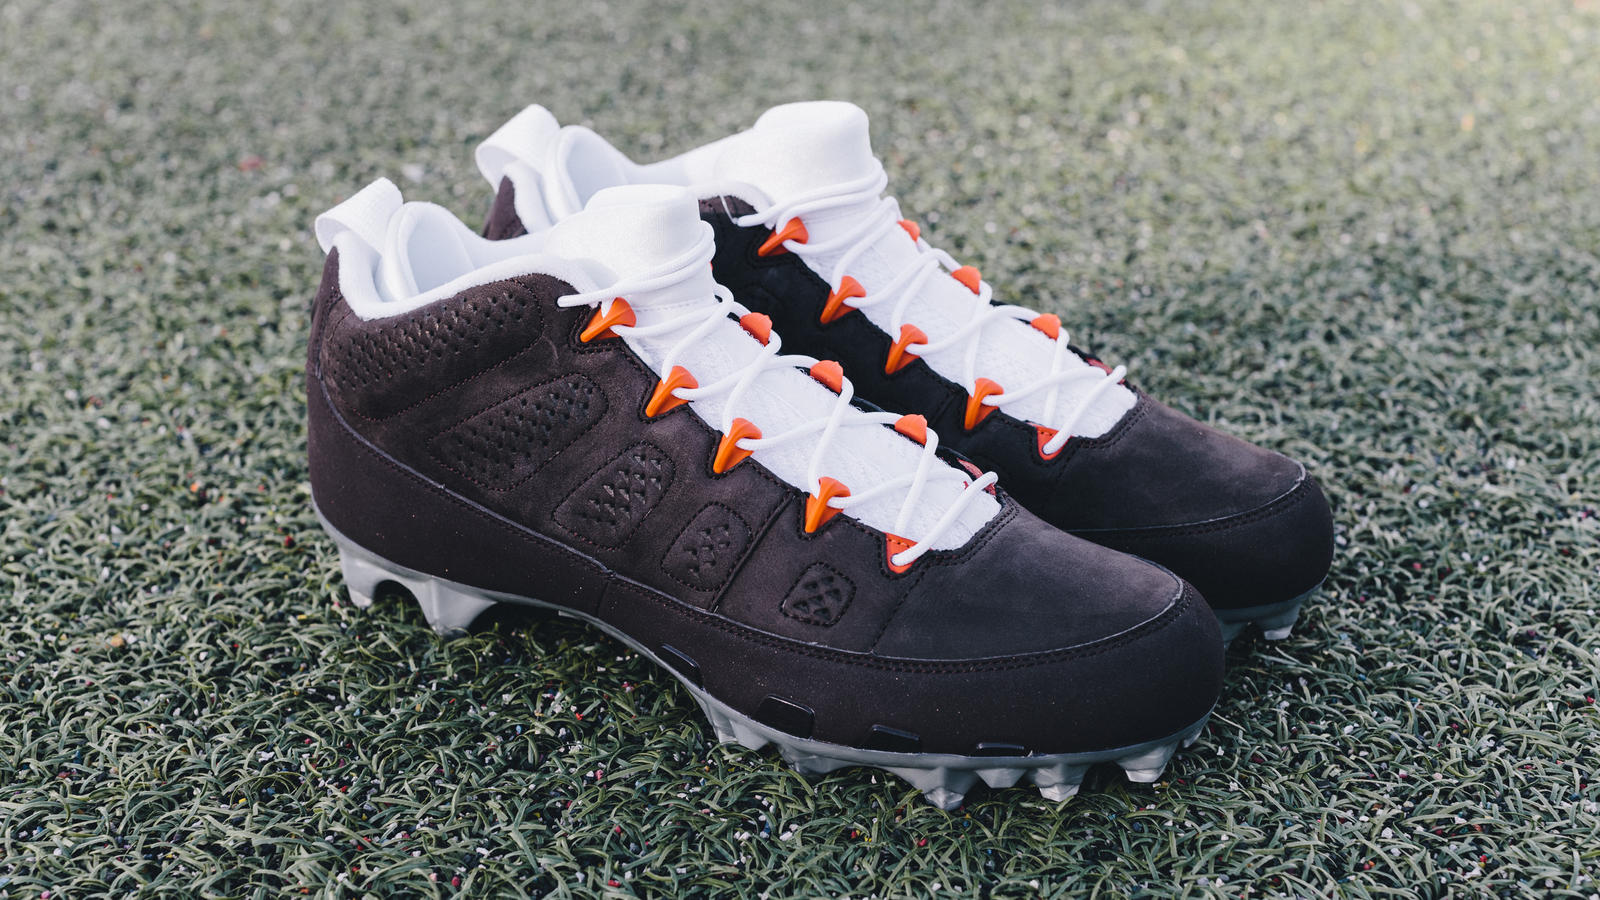 Corey Coleman Air Jordan IX PE Cleat